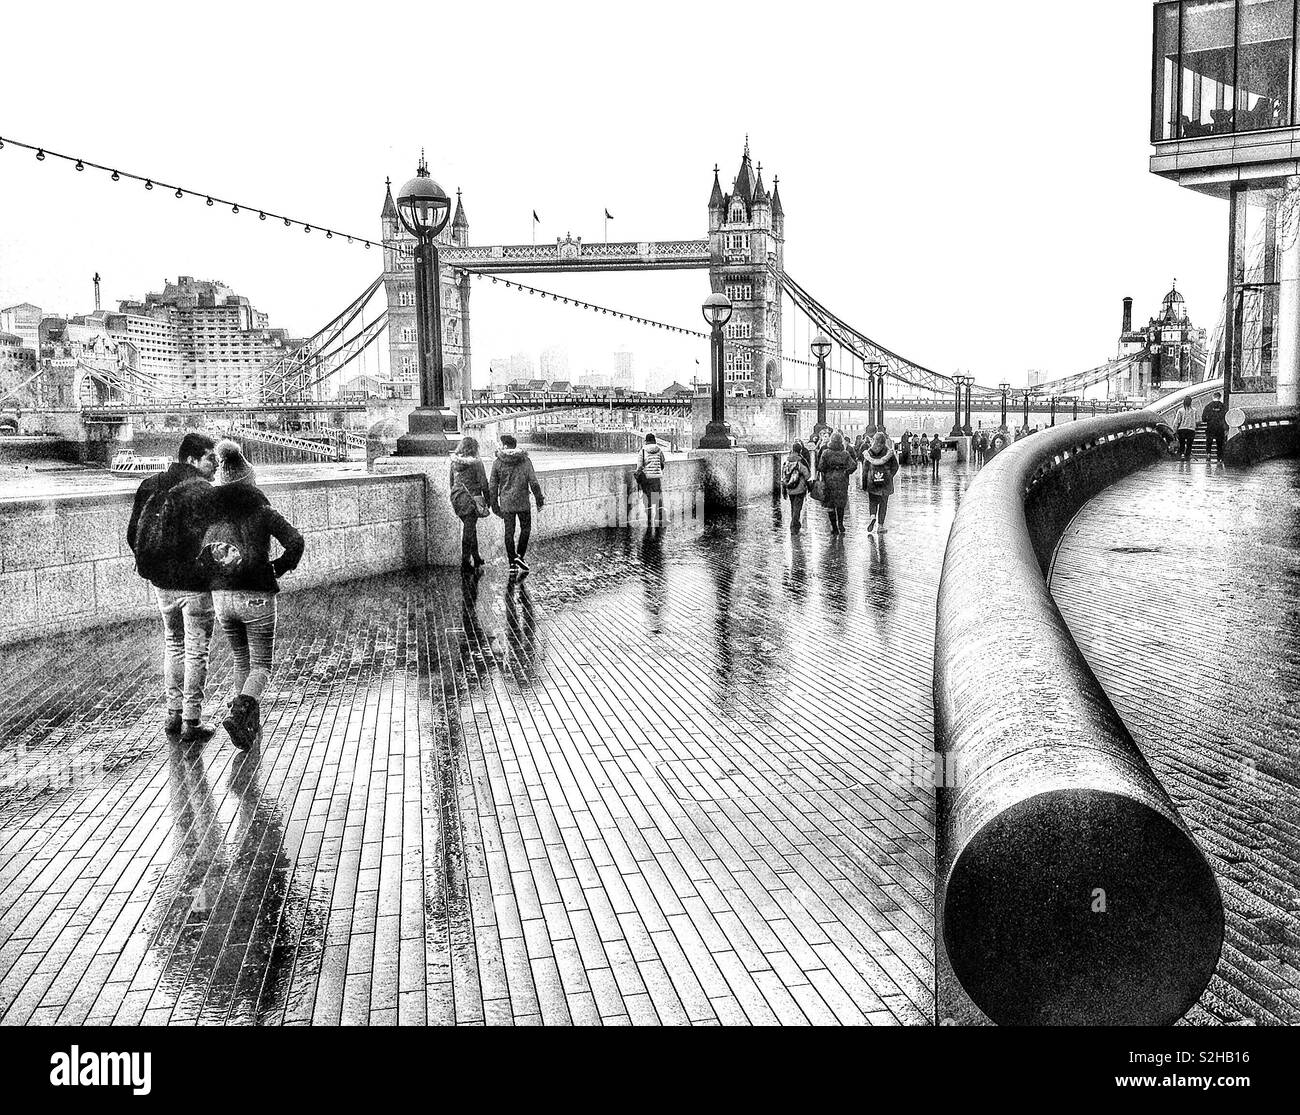 Tourists on a rainy day in London, on the Queen's Walk by the river Thames, looking towards Tower Bridge, London, England - Stock Image